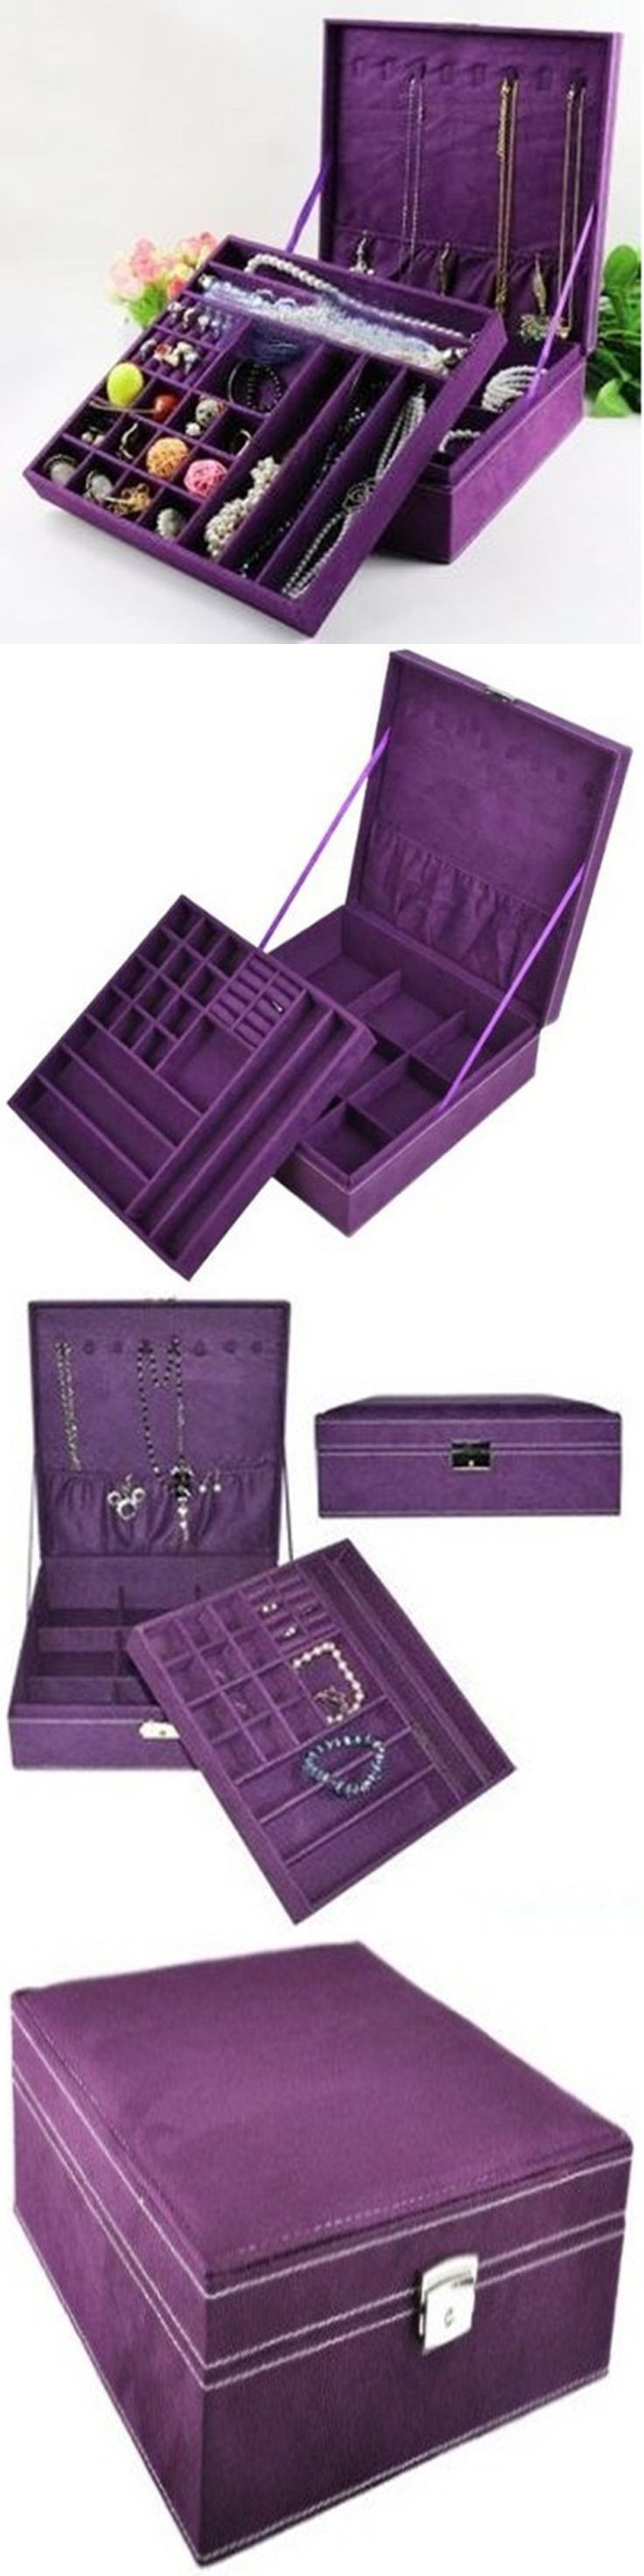 Multi-Purpose 168165: Jewelry Box Purple Storage Cabinet Organizer Necklace Chest Display Case Armoire BUY IT NOW ONLY: $35.52